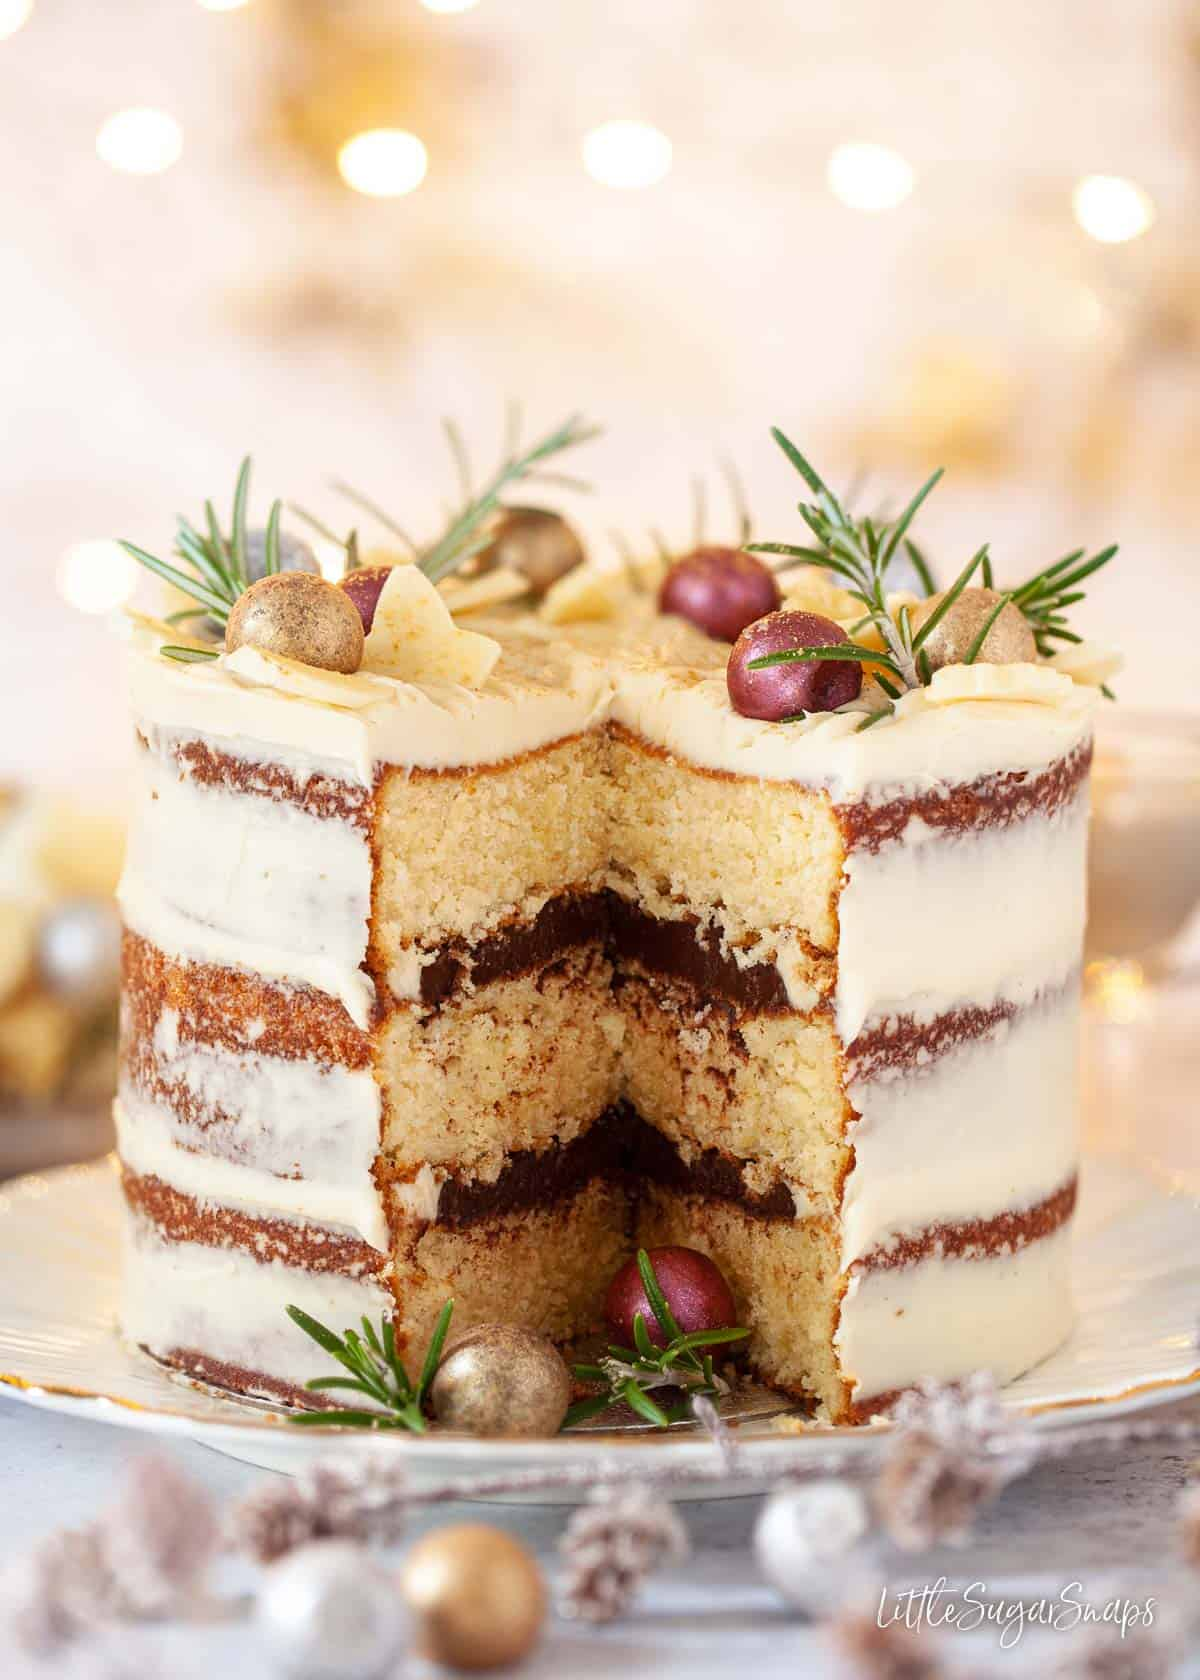 A festive white chocolate cake with a slice cut out of it